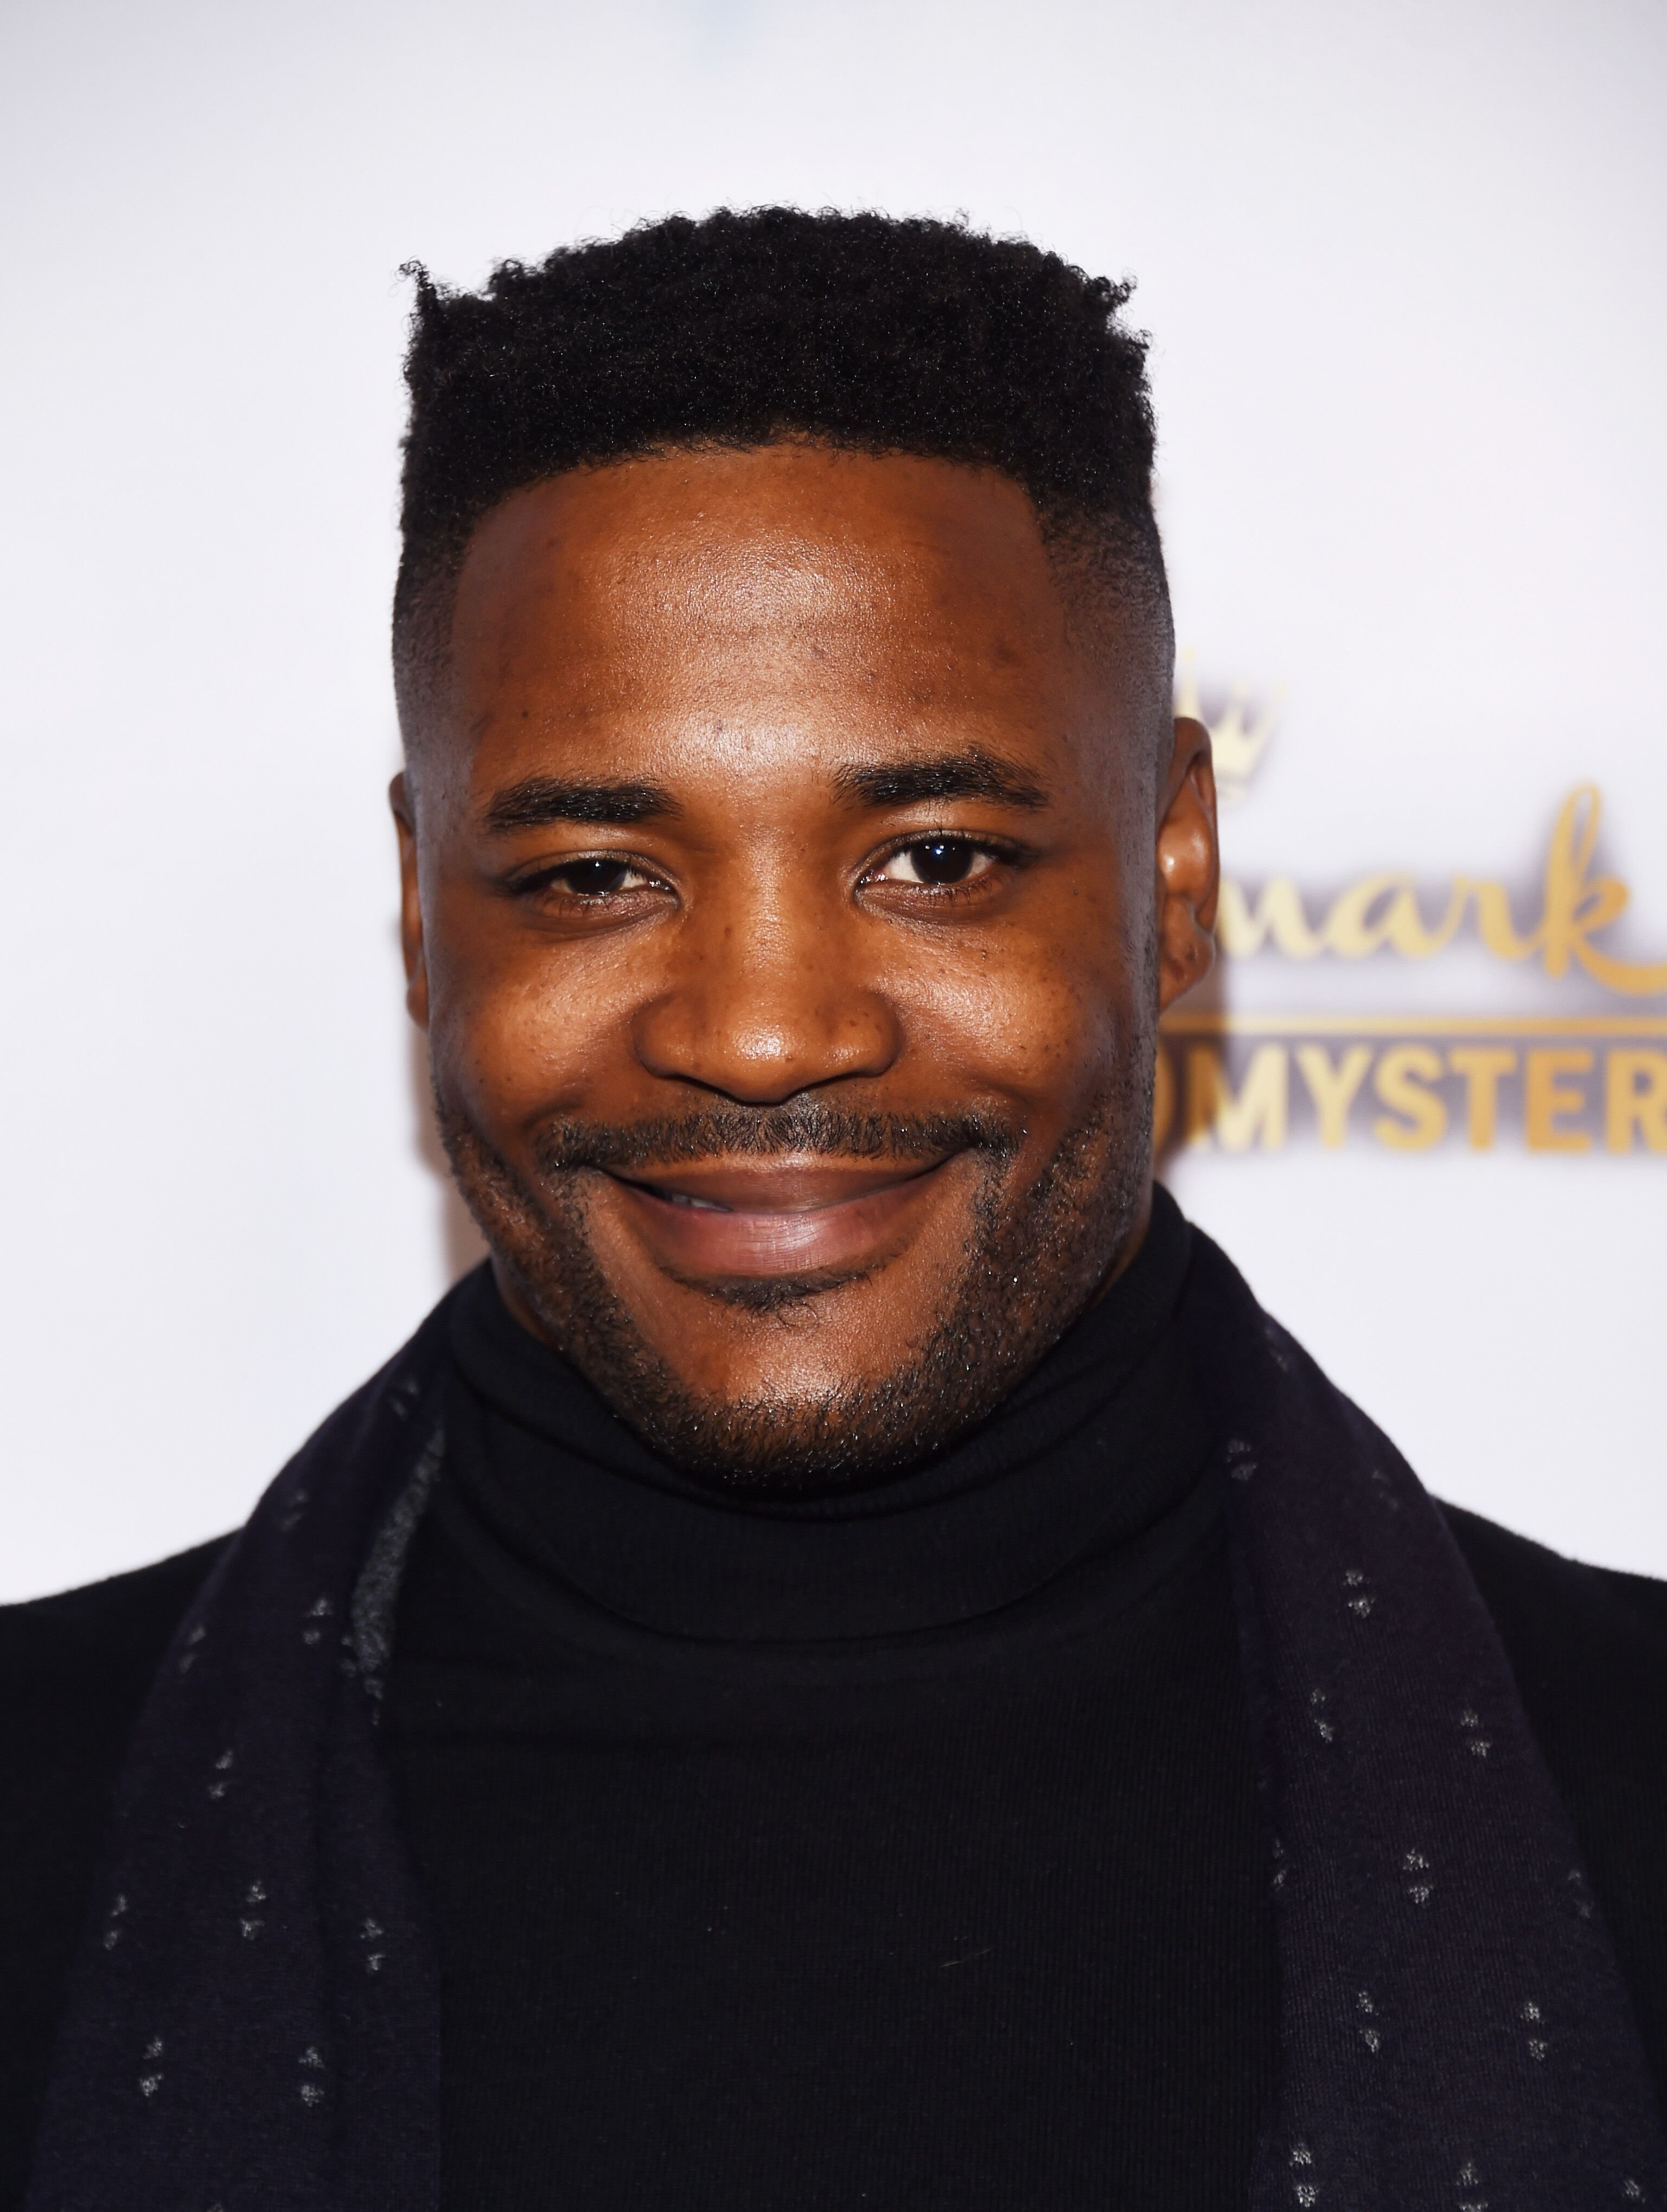 Duane Henry appeared in NCIS in season 13 / Getty Images